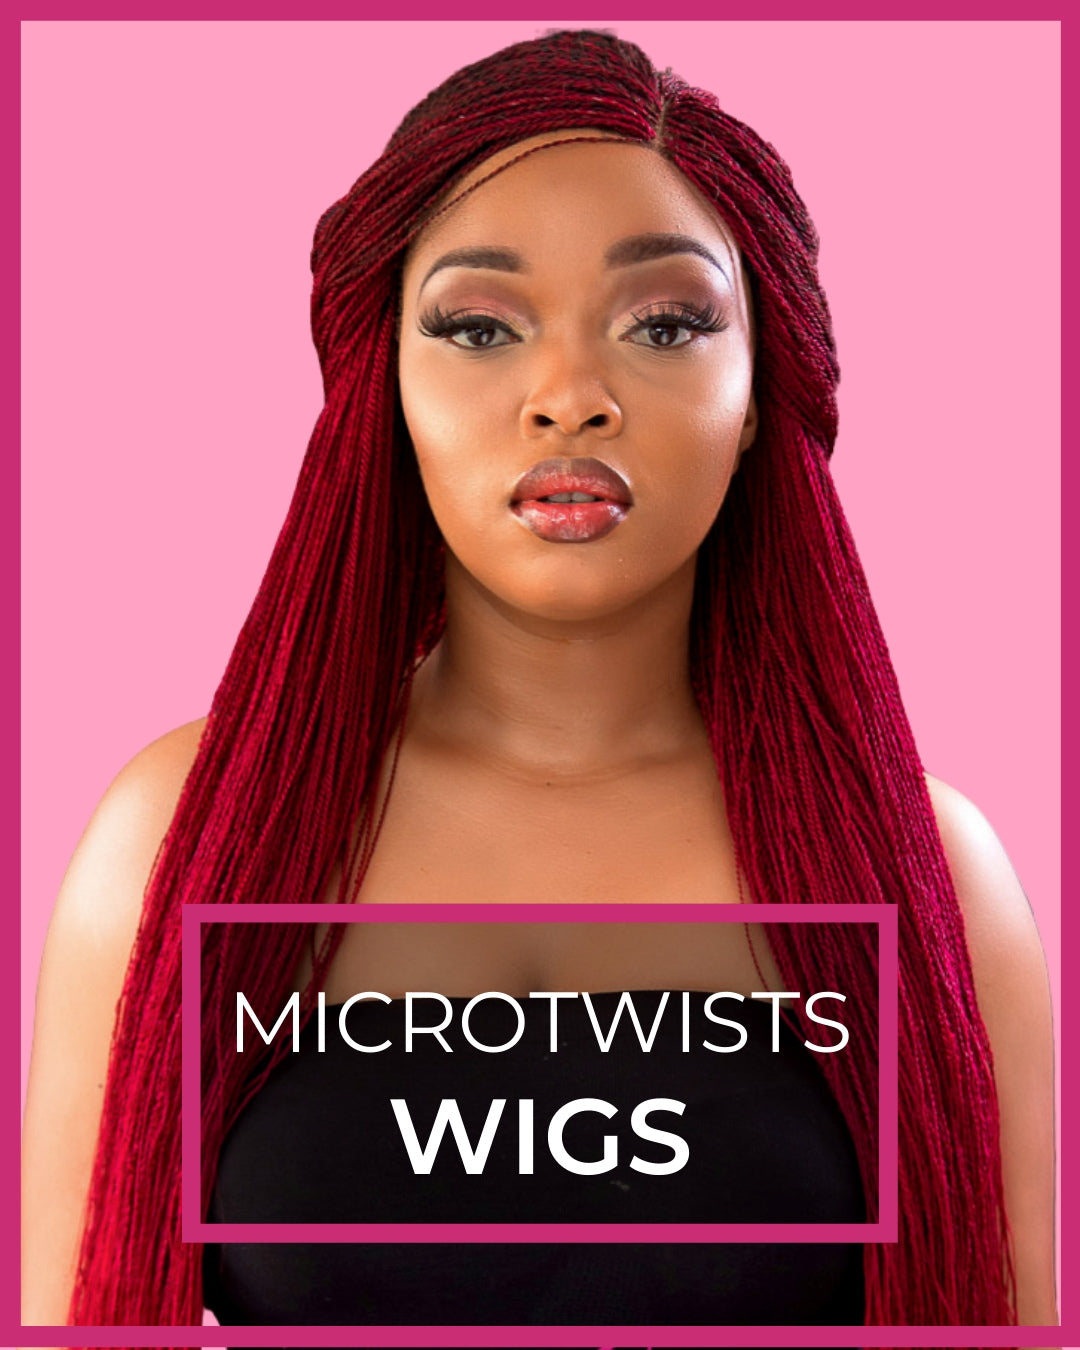 MICROTWISTS WIGS